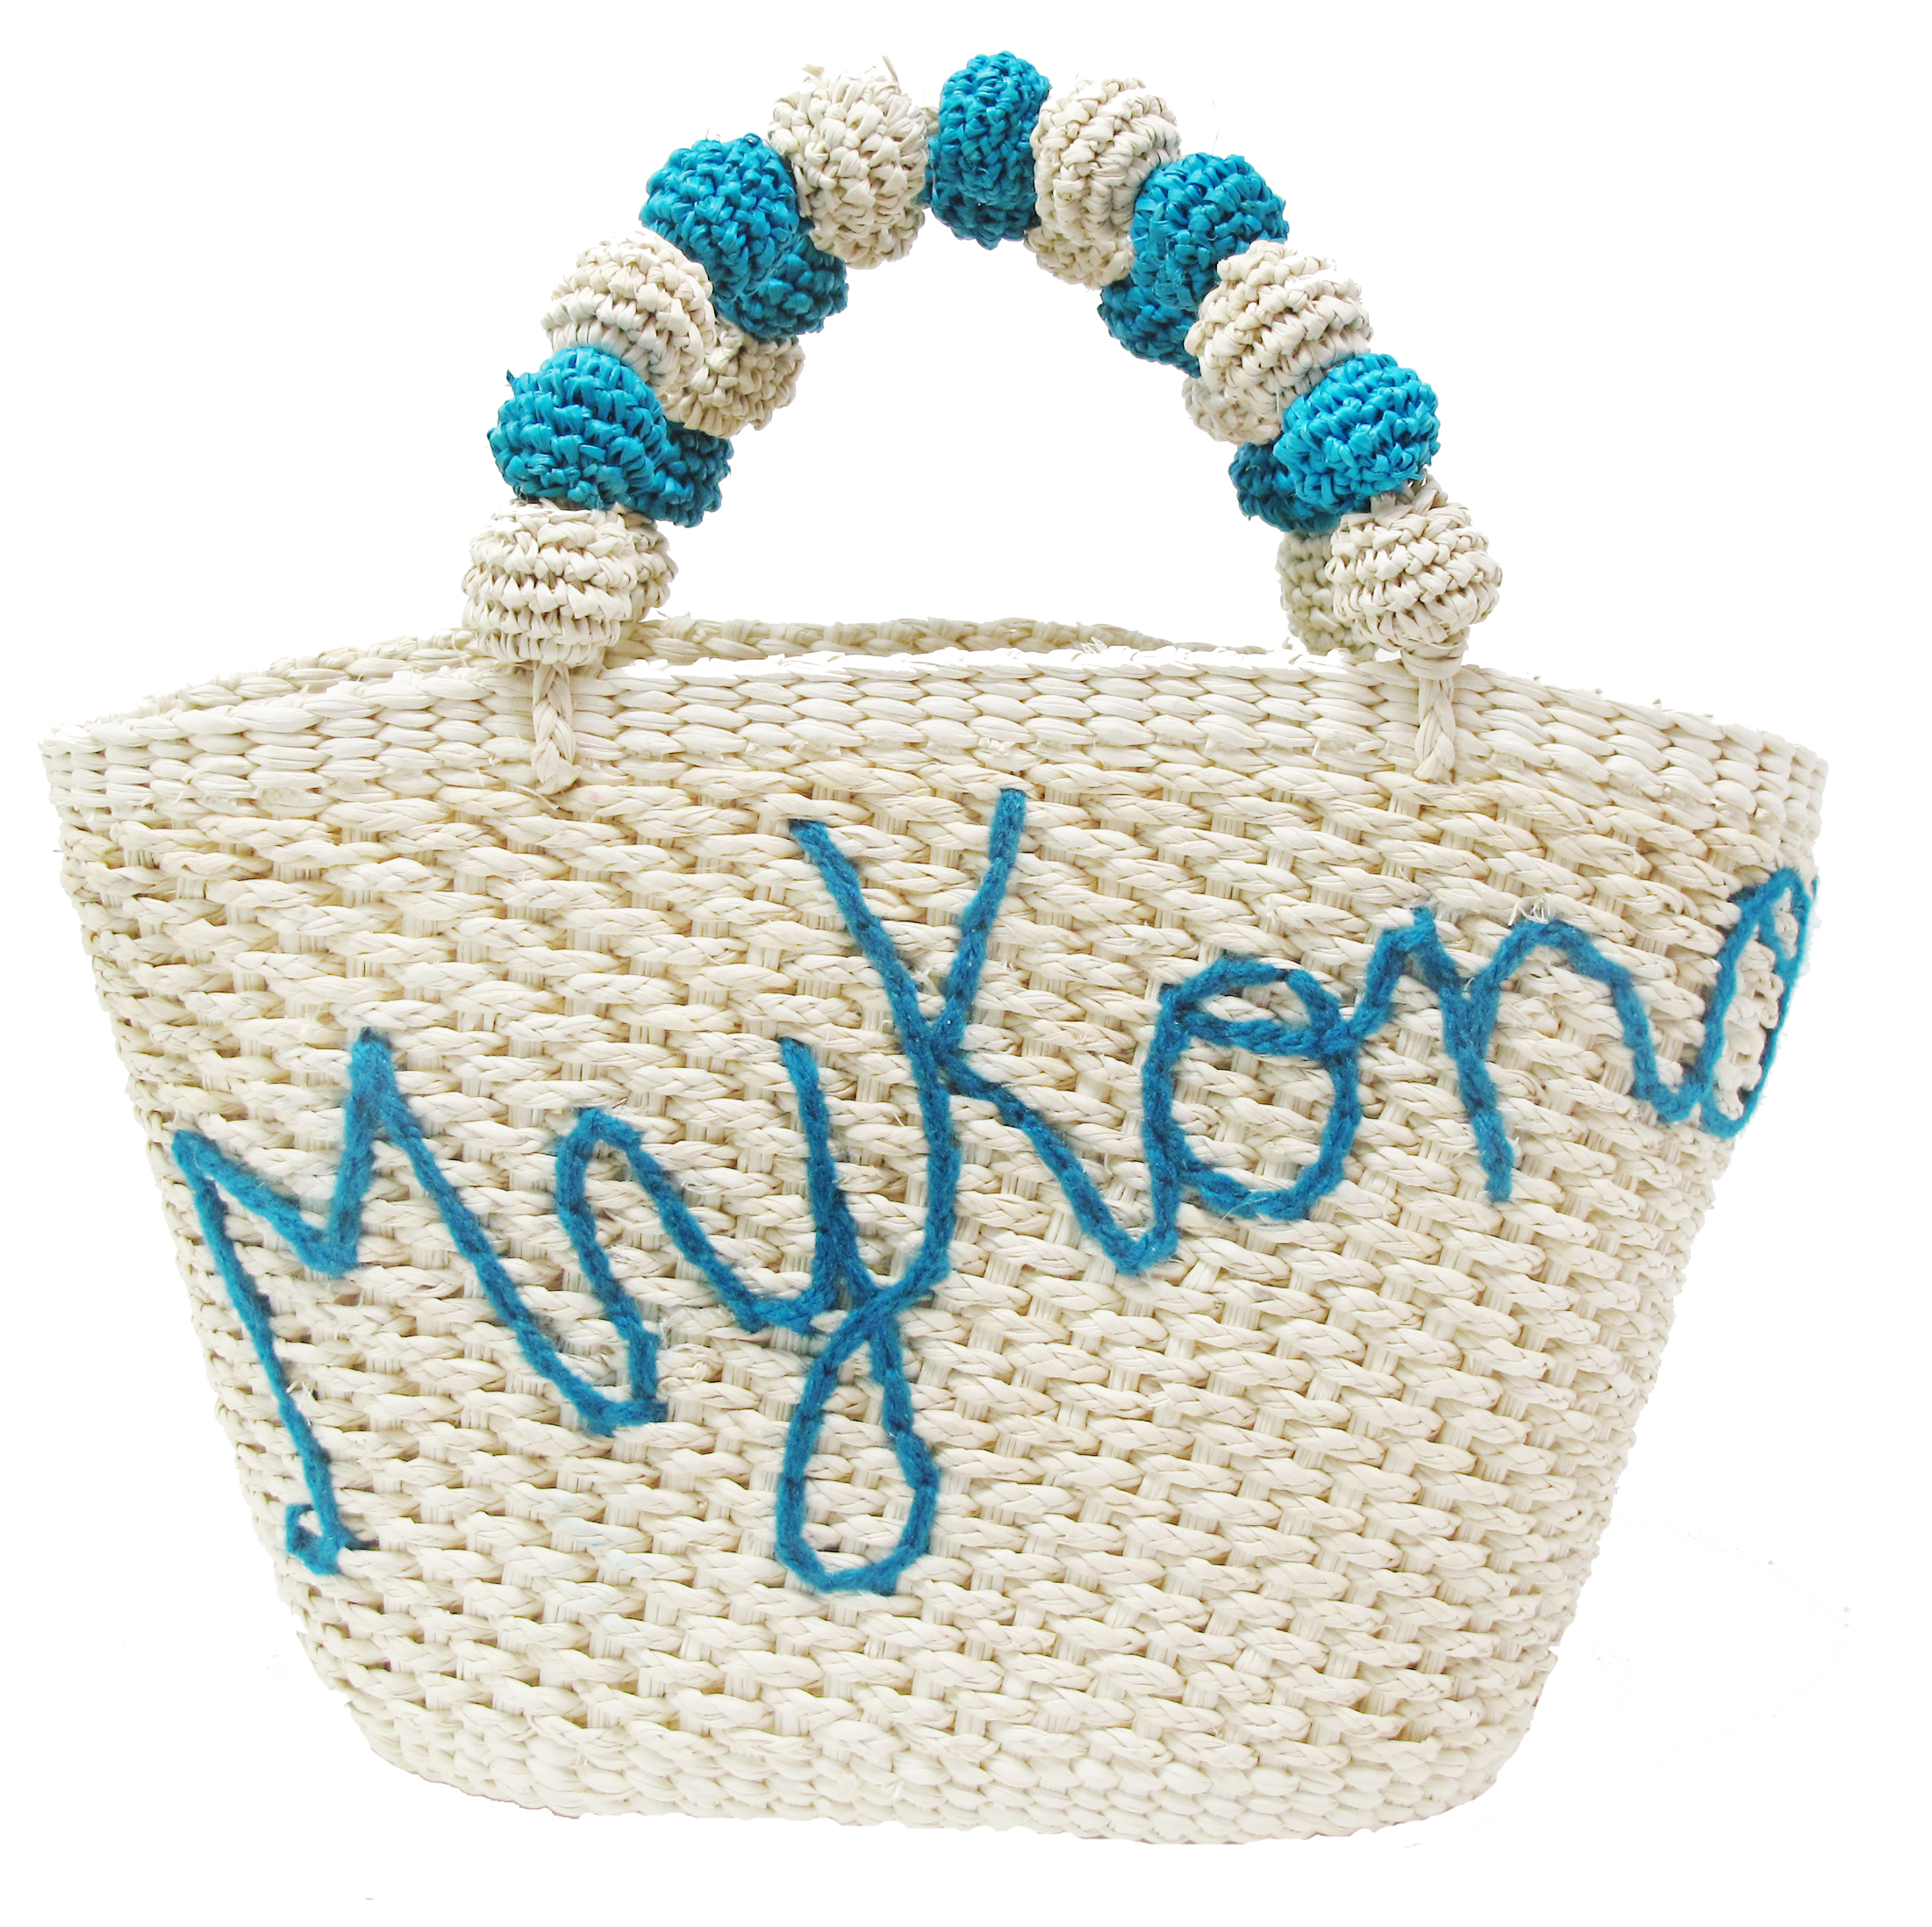 Include a beach bag when deciding what to pack for your honeymoon